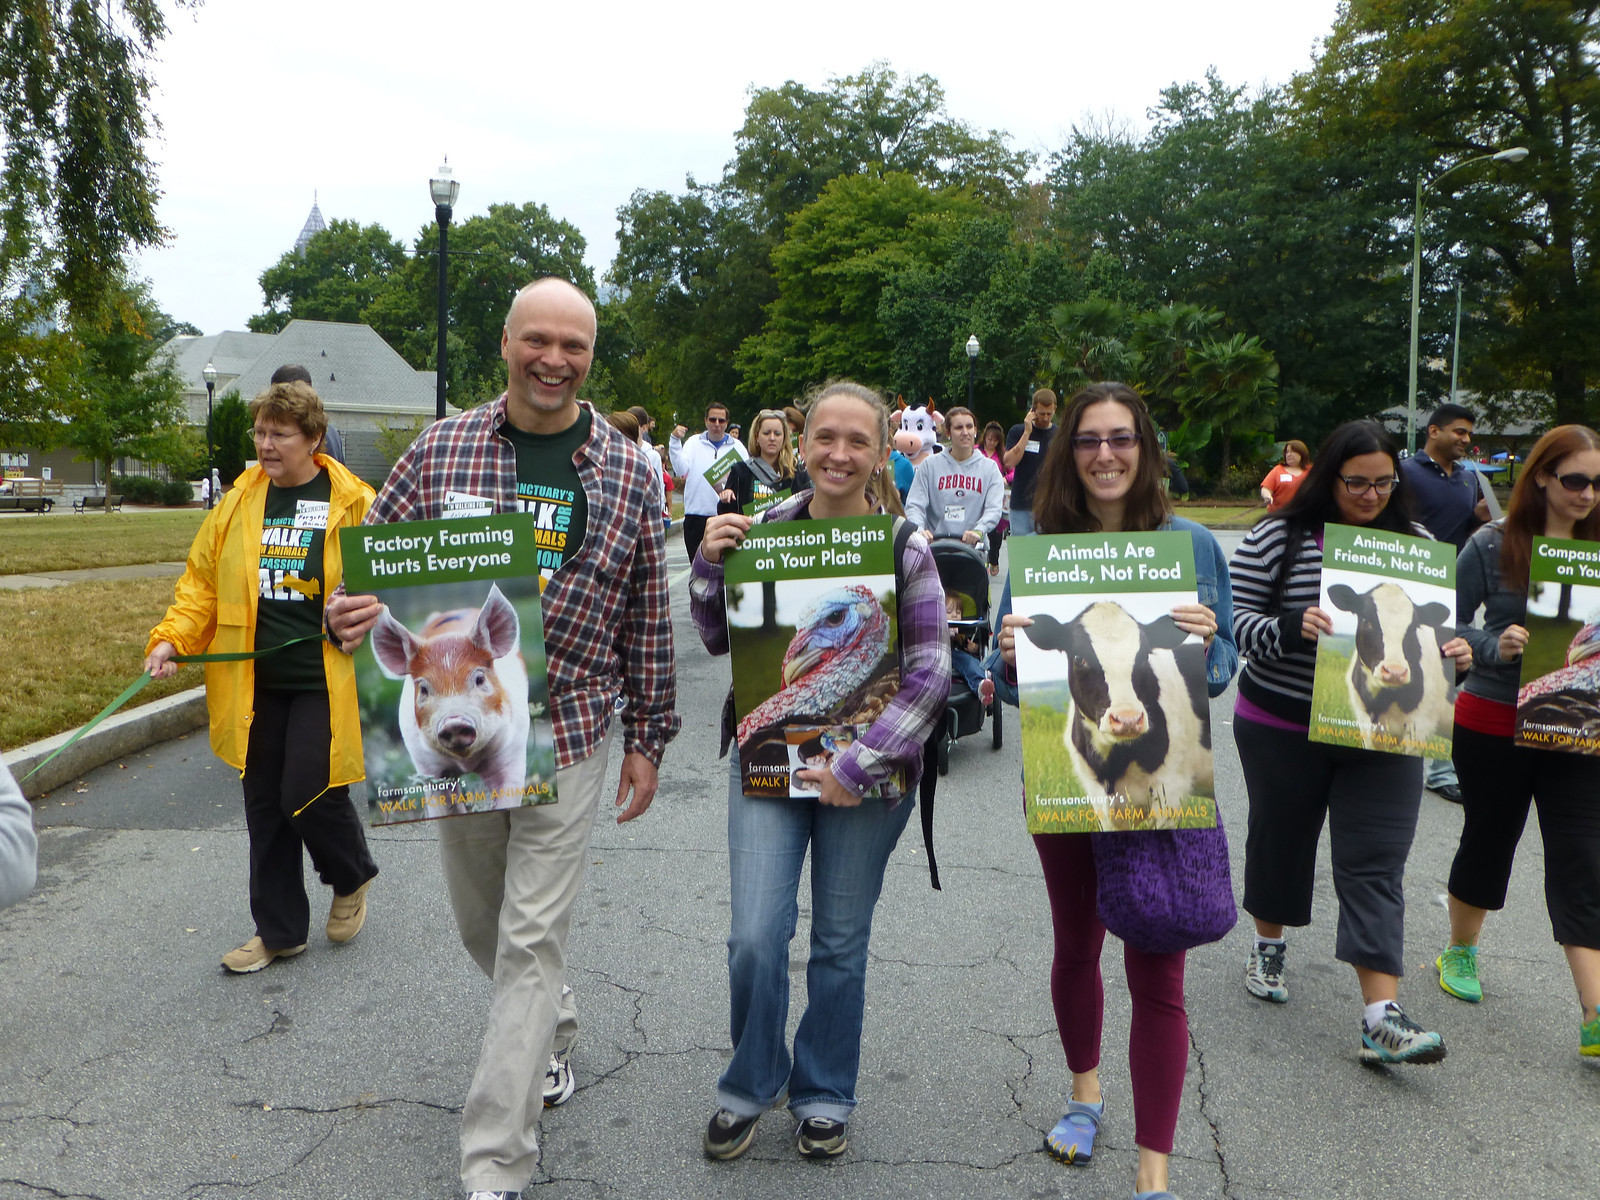 walk-for-animals-2013-10-19-a